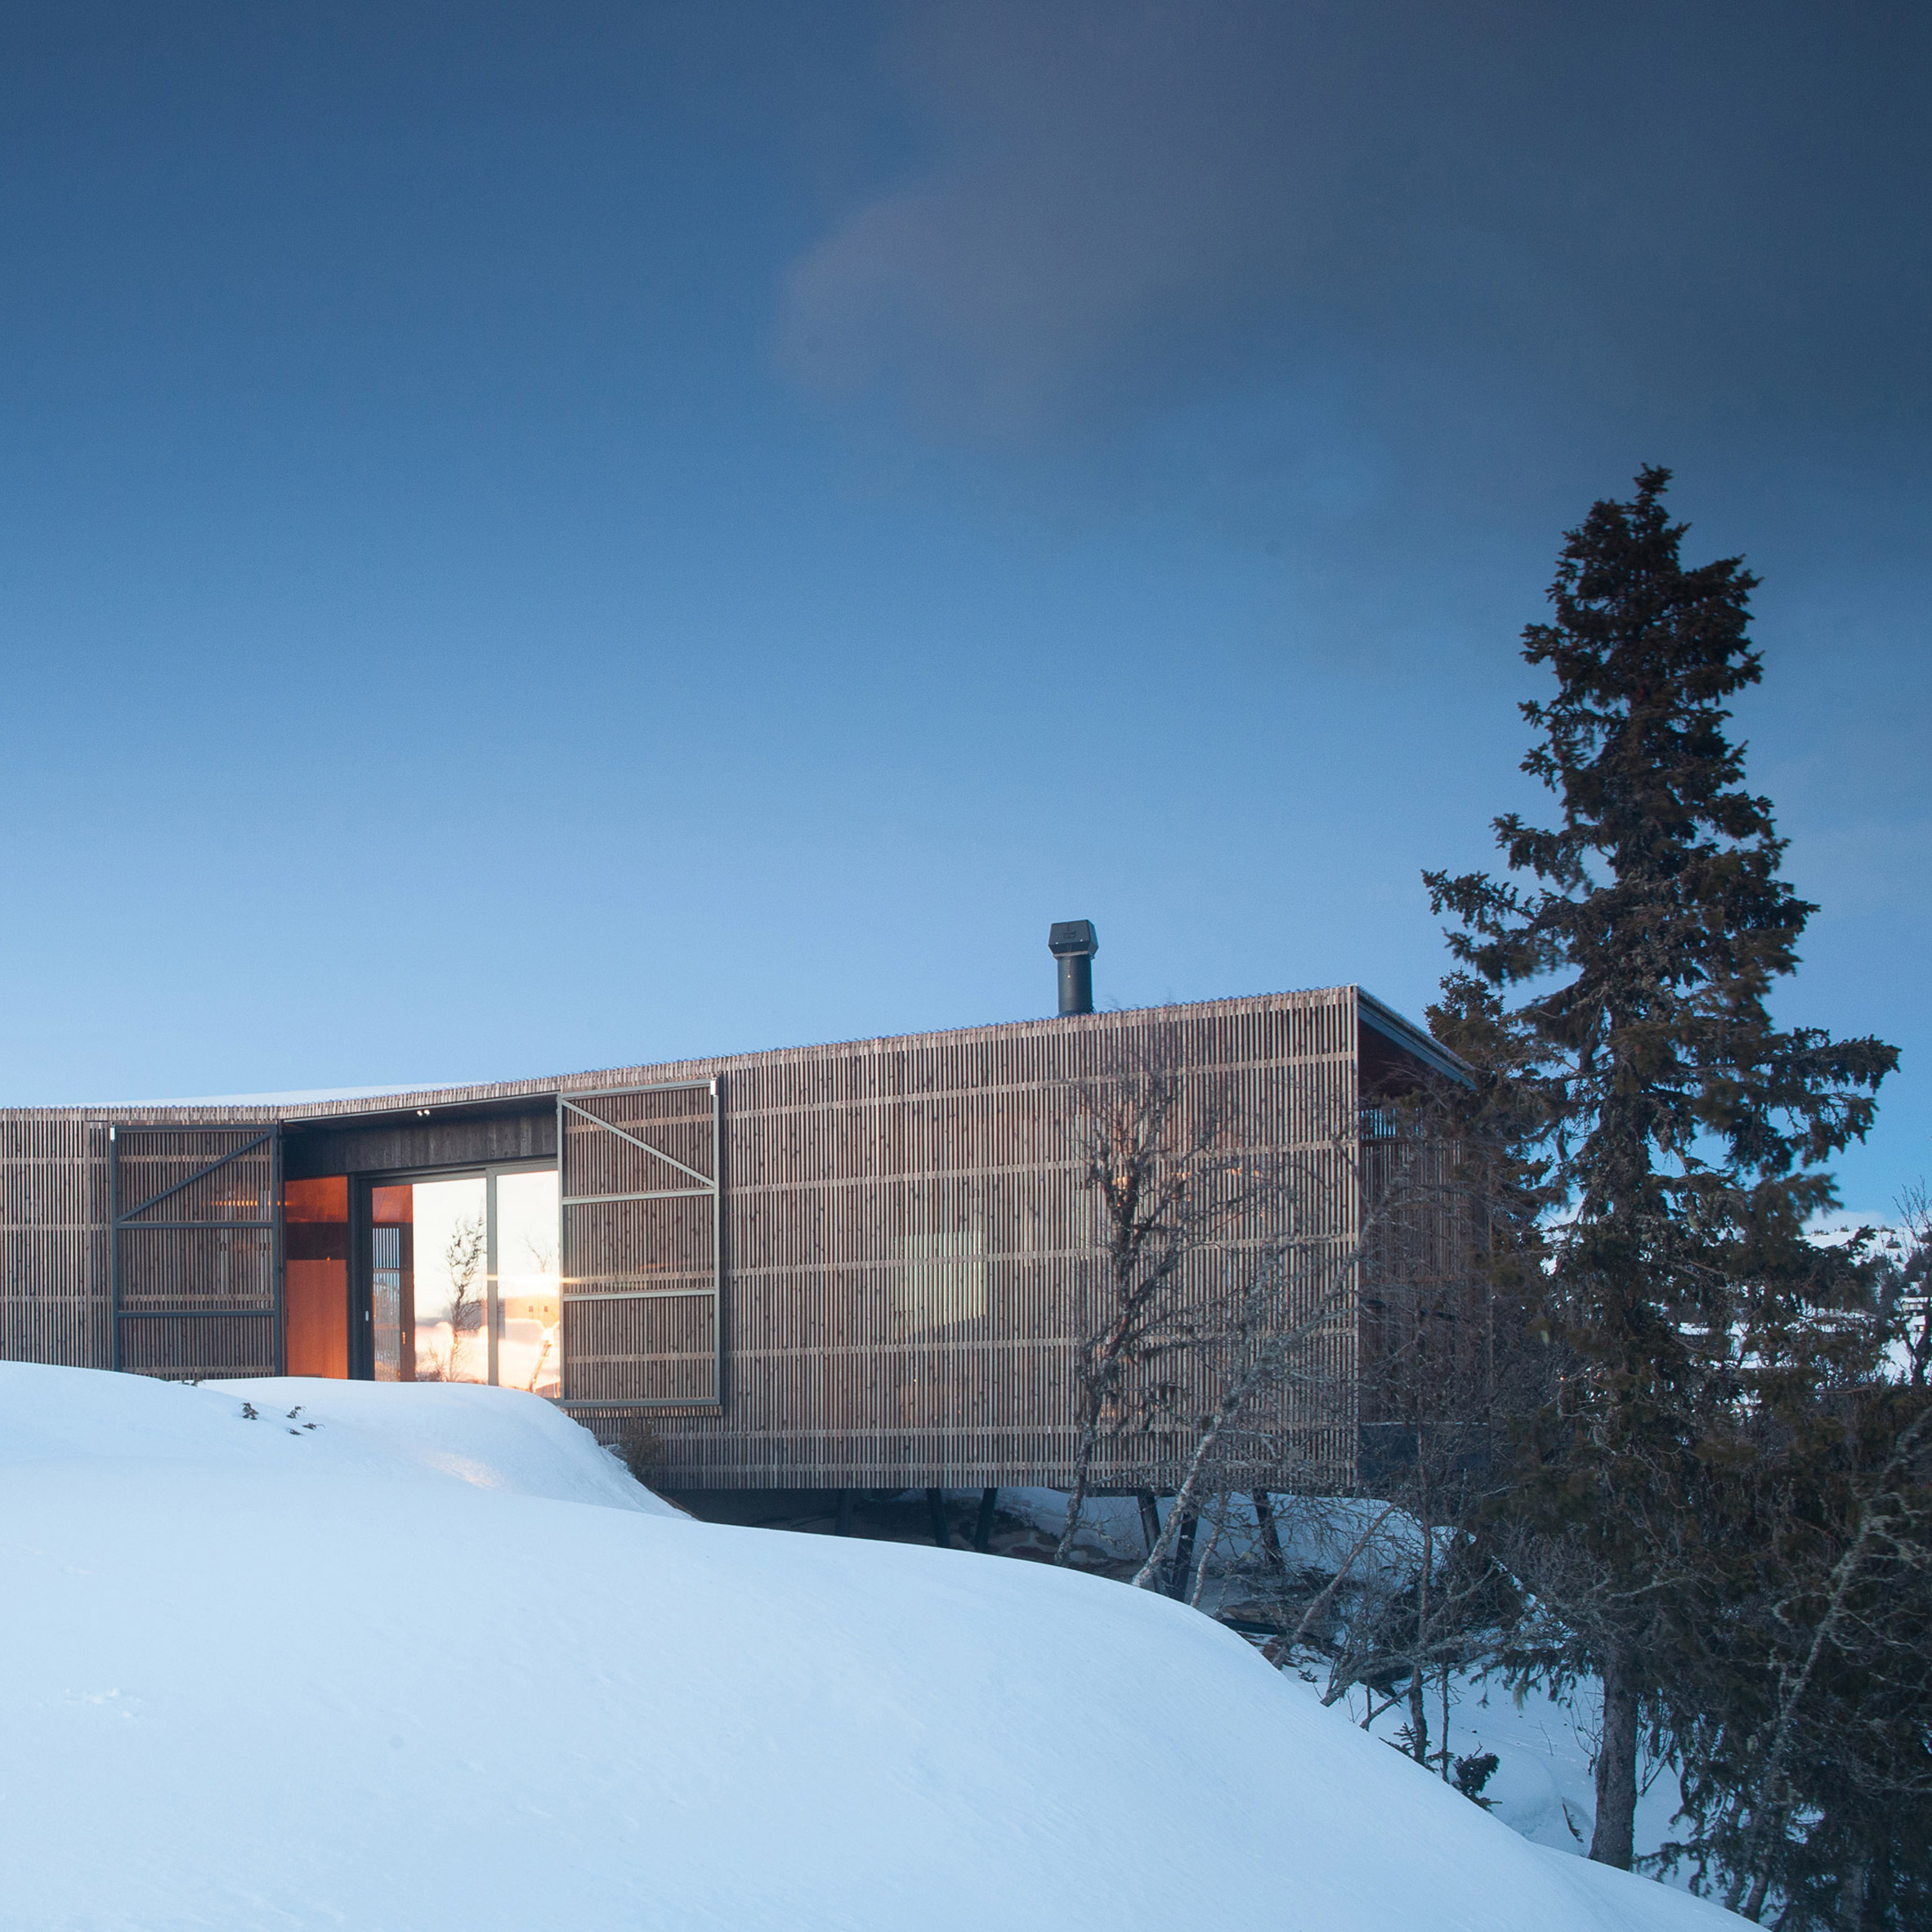 House design and architecture in Norway | Dezeen